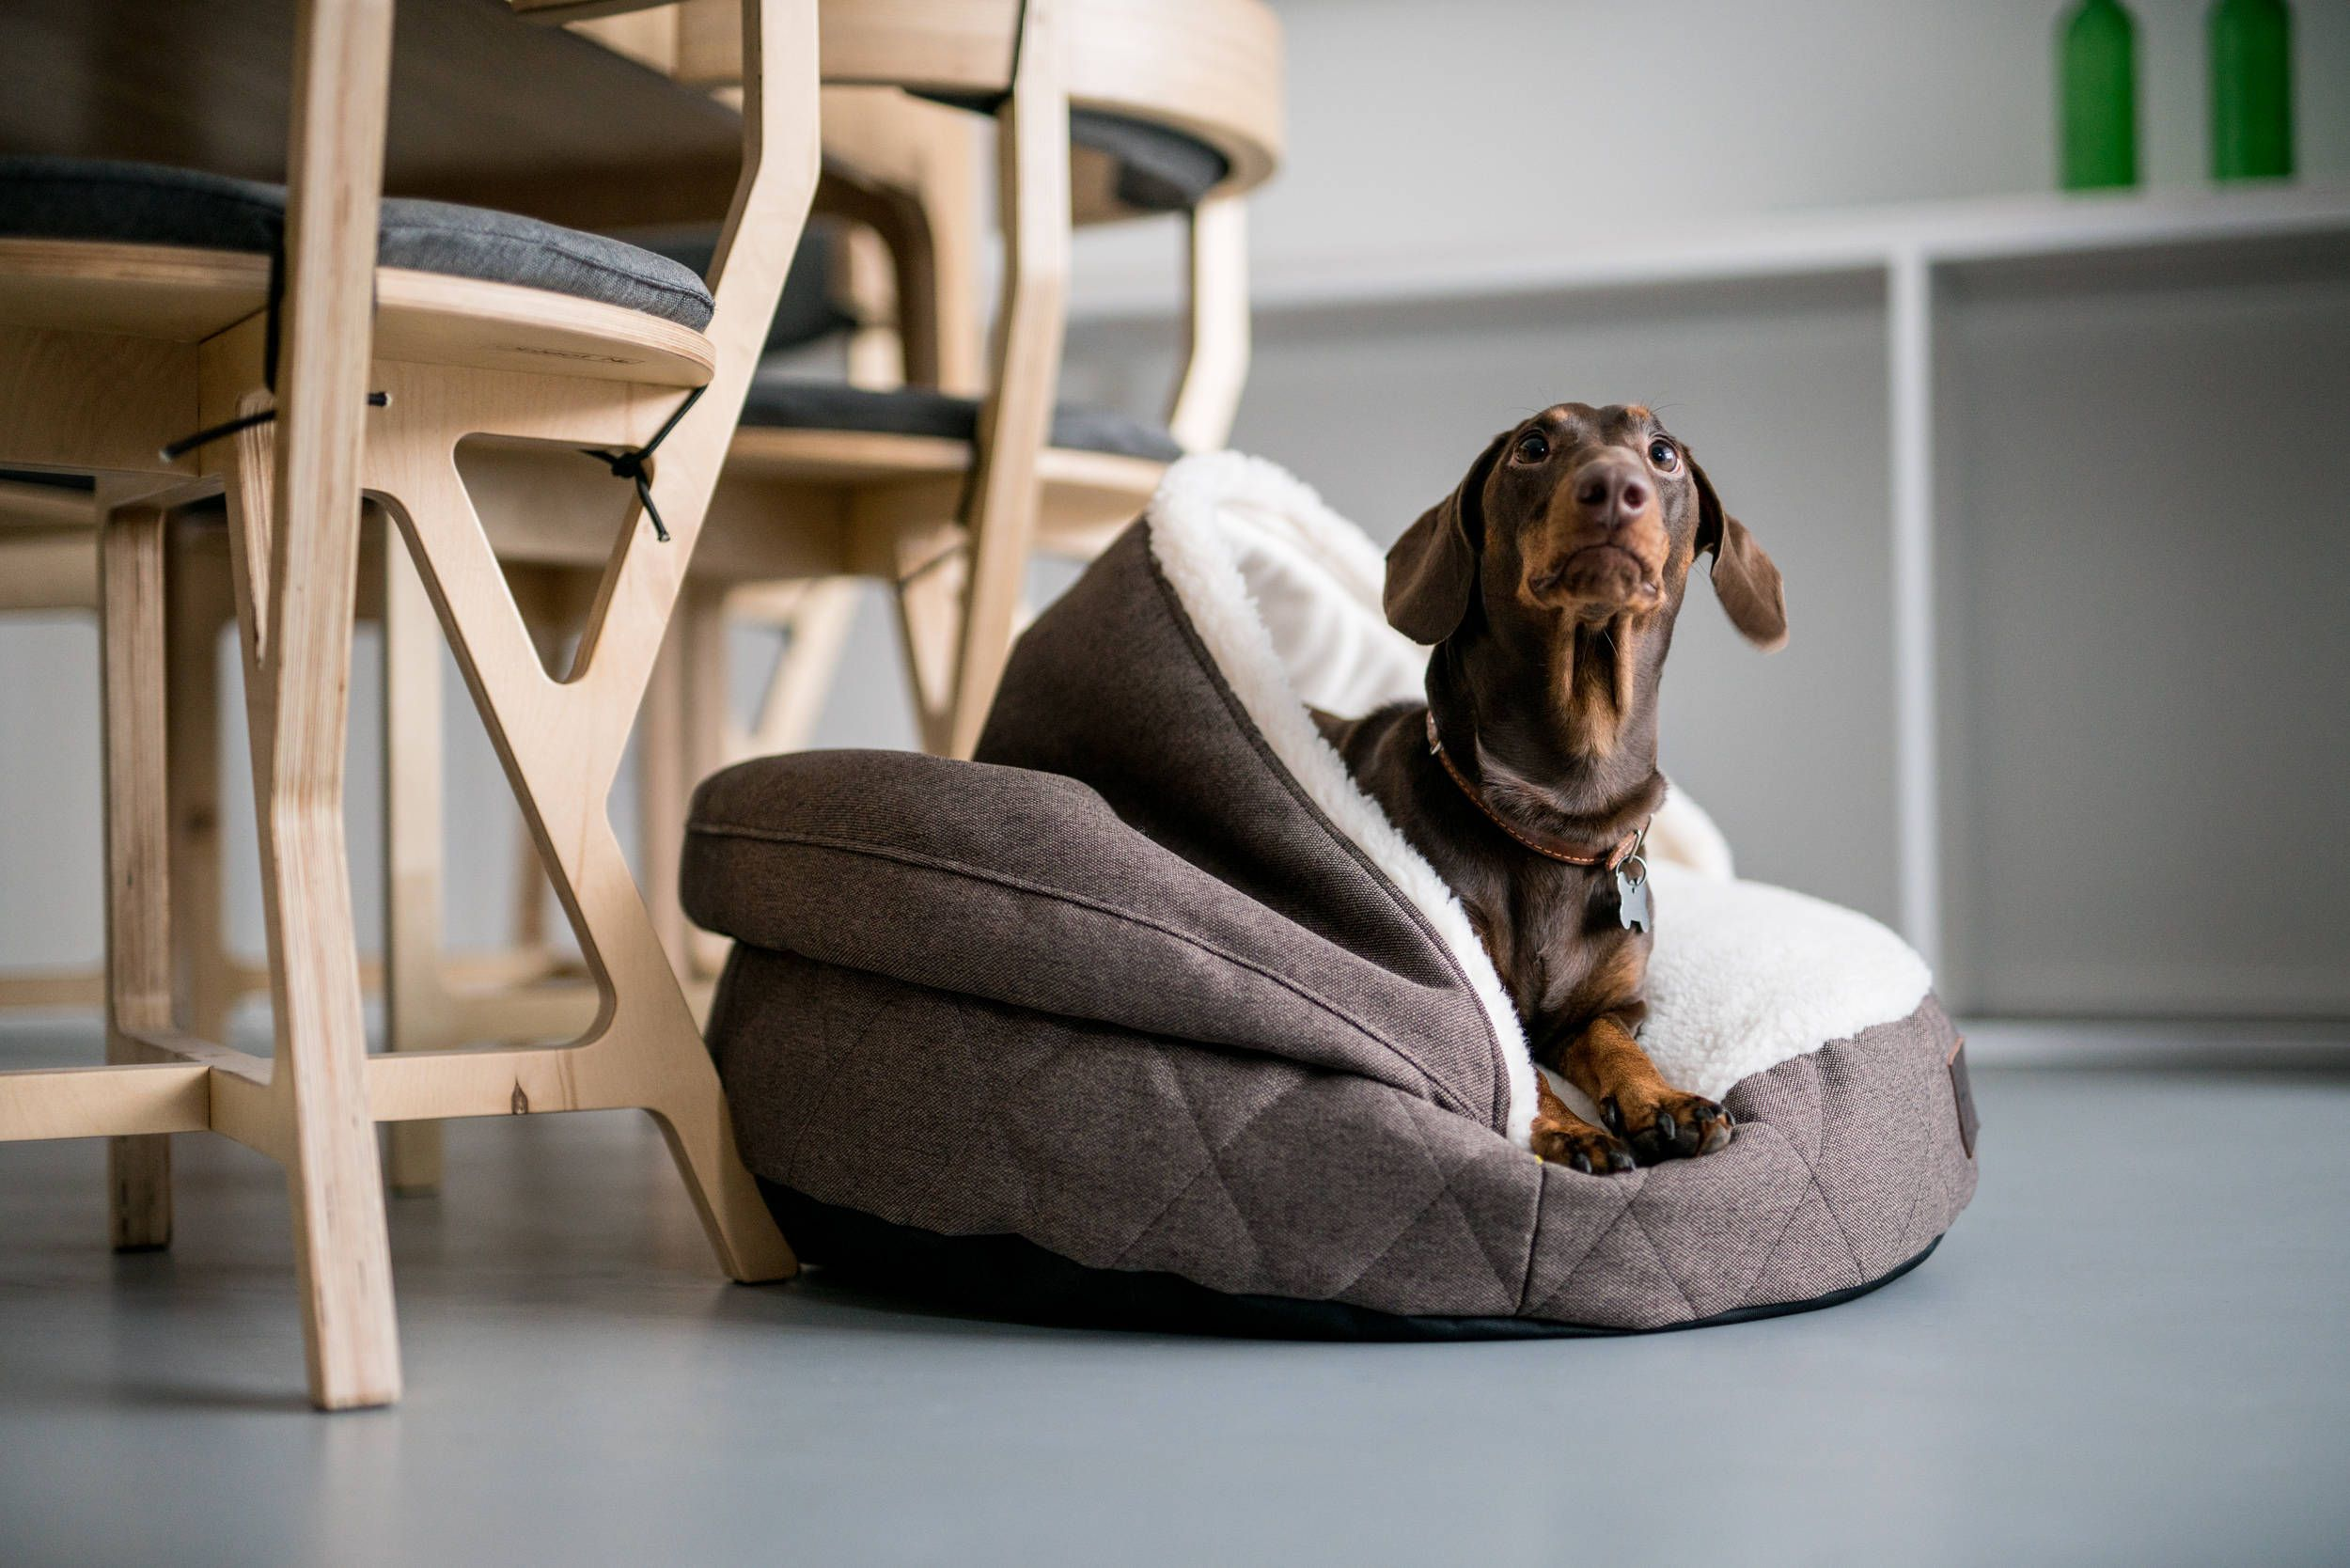 most advanced dog the cave cream available removable elegant cover snuggle fabric patent bed base kona in small designer protected with herringbone products